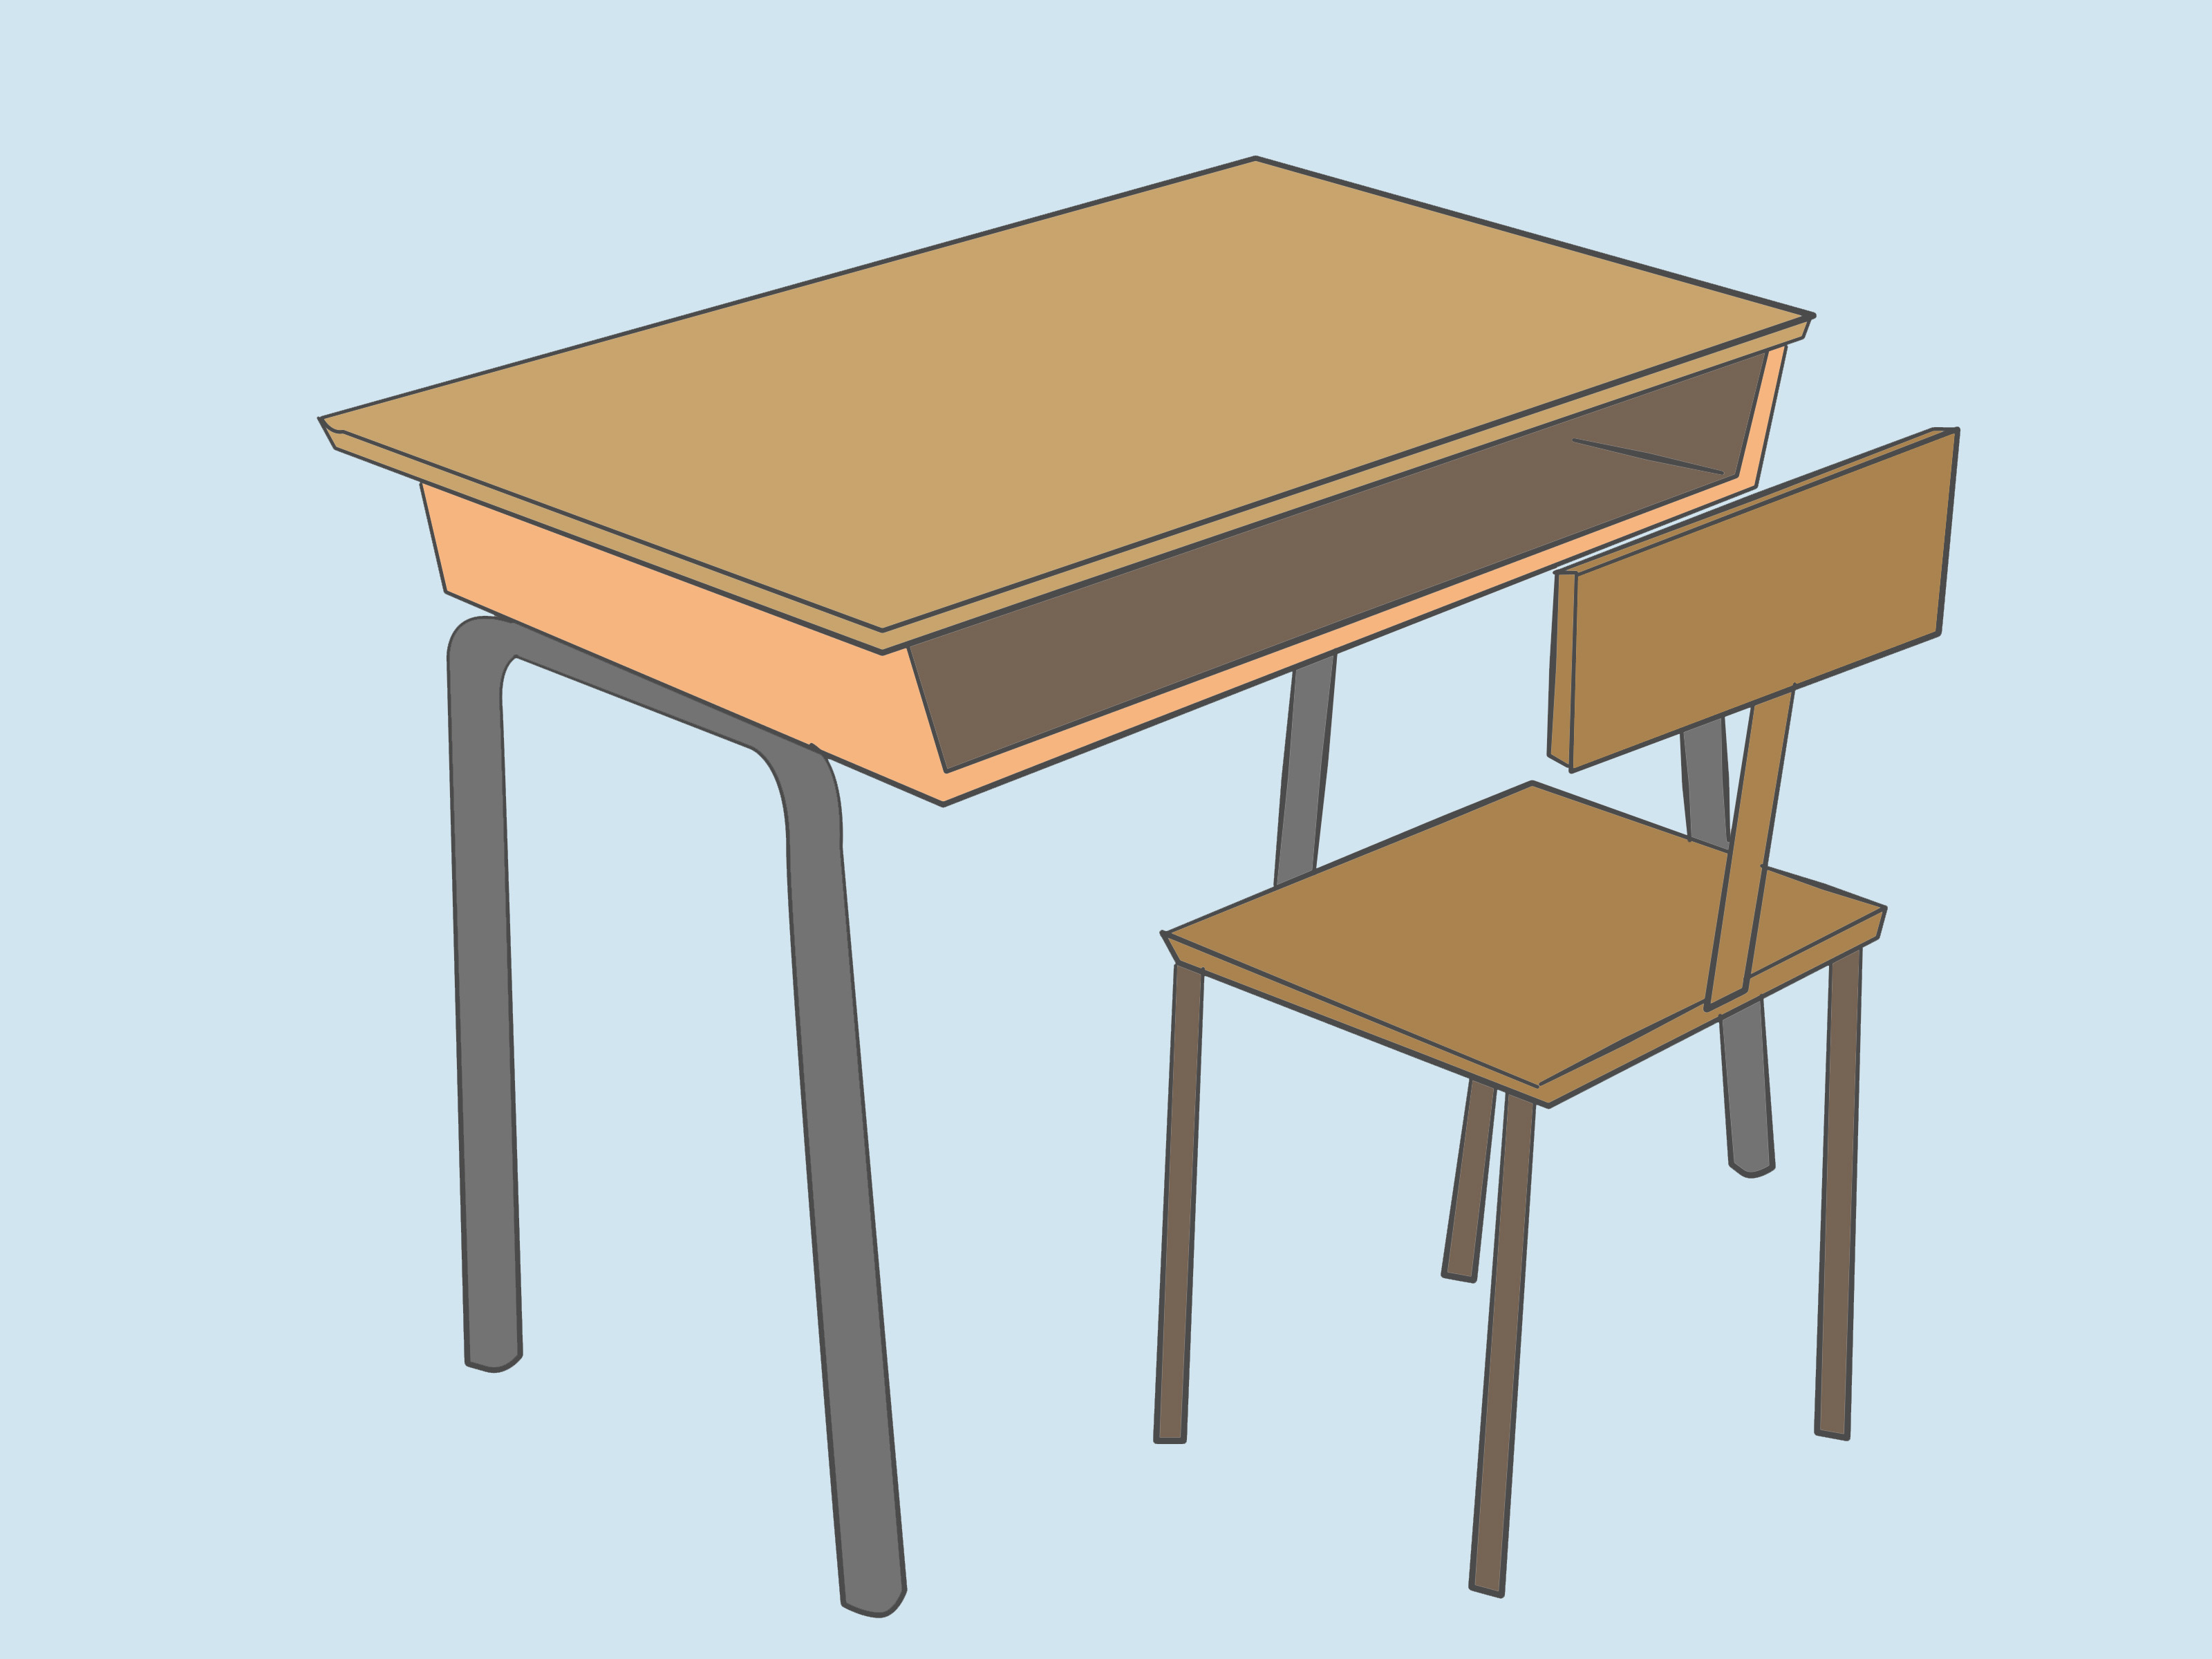 school desk drawing at getdrawings com free for personal use rh getdrawings com school desk chair clipart Teacher Desk Clip Art